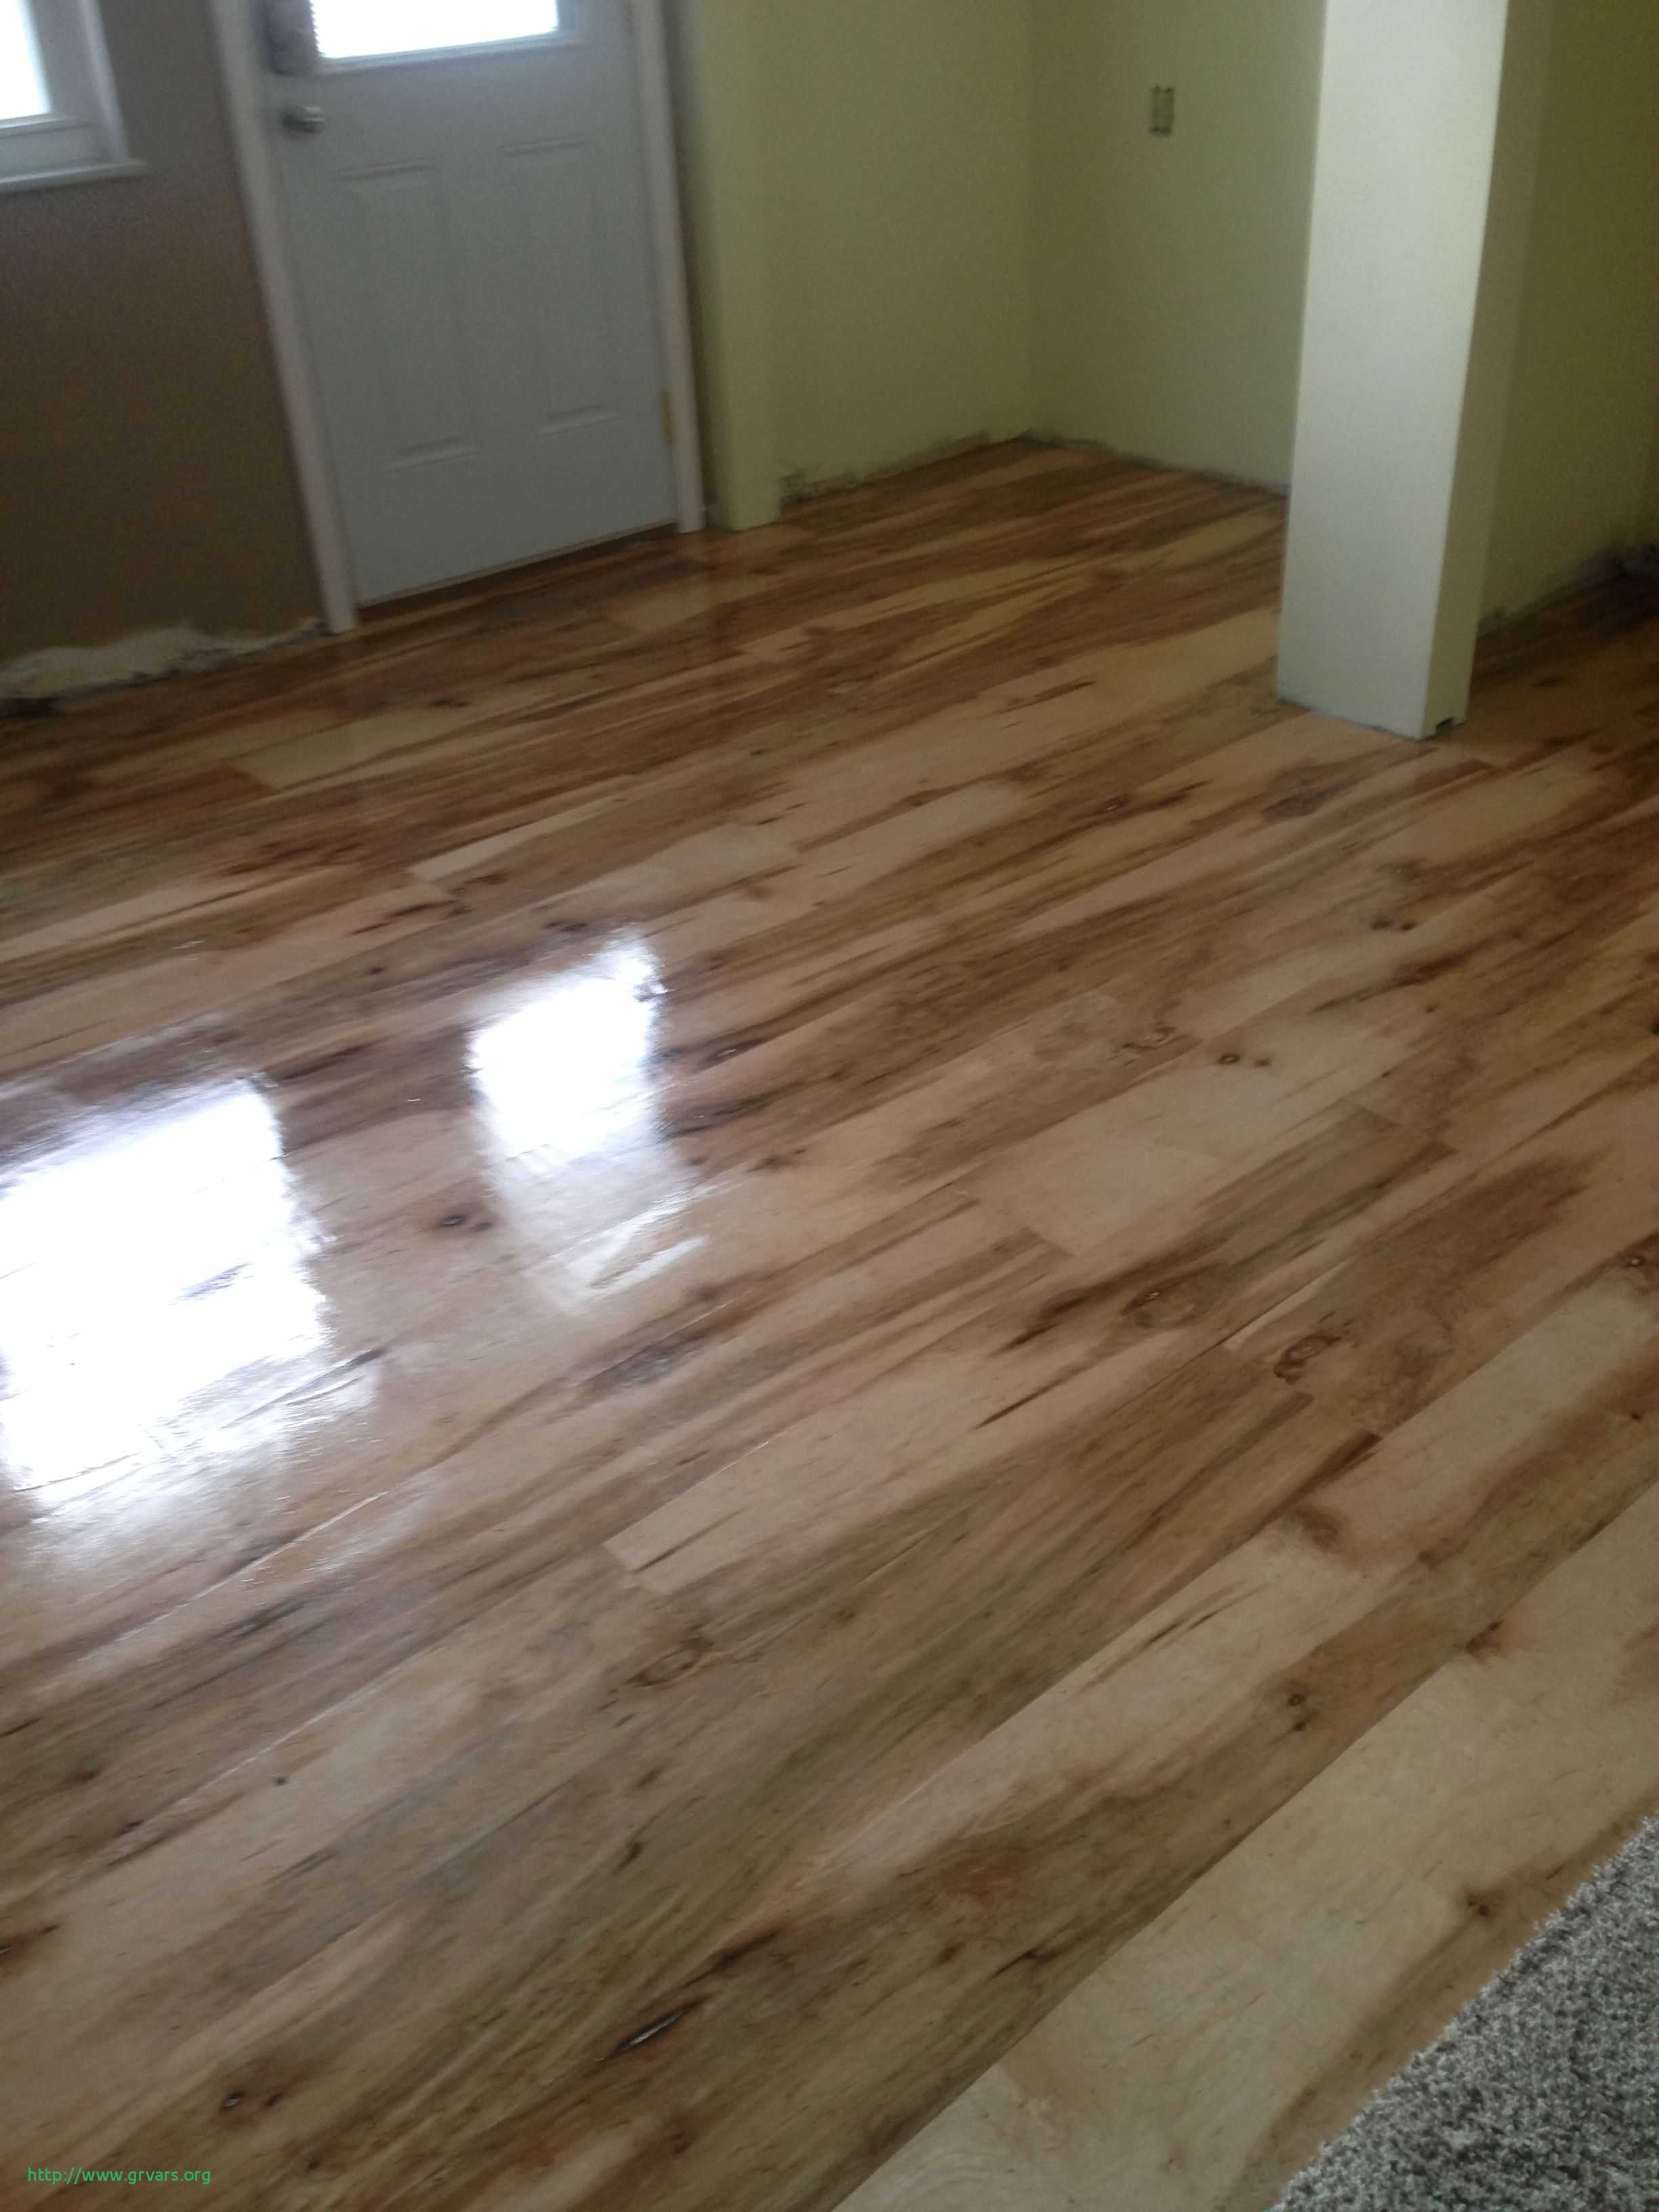 White Washed Oak Hardwood Flooring Of Buy Floors Direct Nashville Nouveau Engaging Discount Hardwood with Buy Floors Direct Nashville Nouveau Engaging Discount Hardwood Flooring 5 where to Buy Inspirational 0d